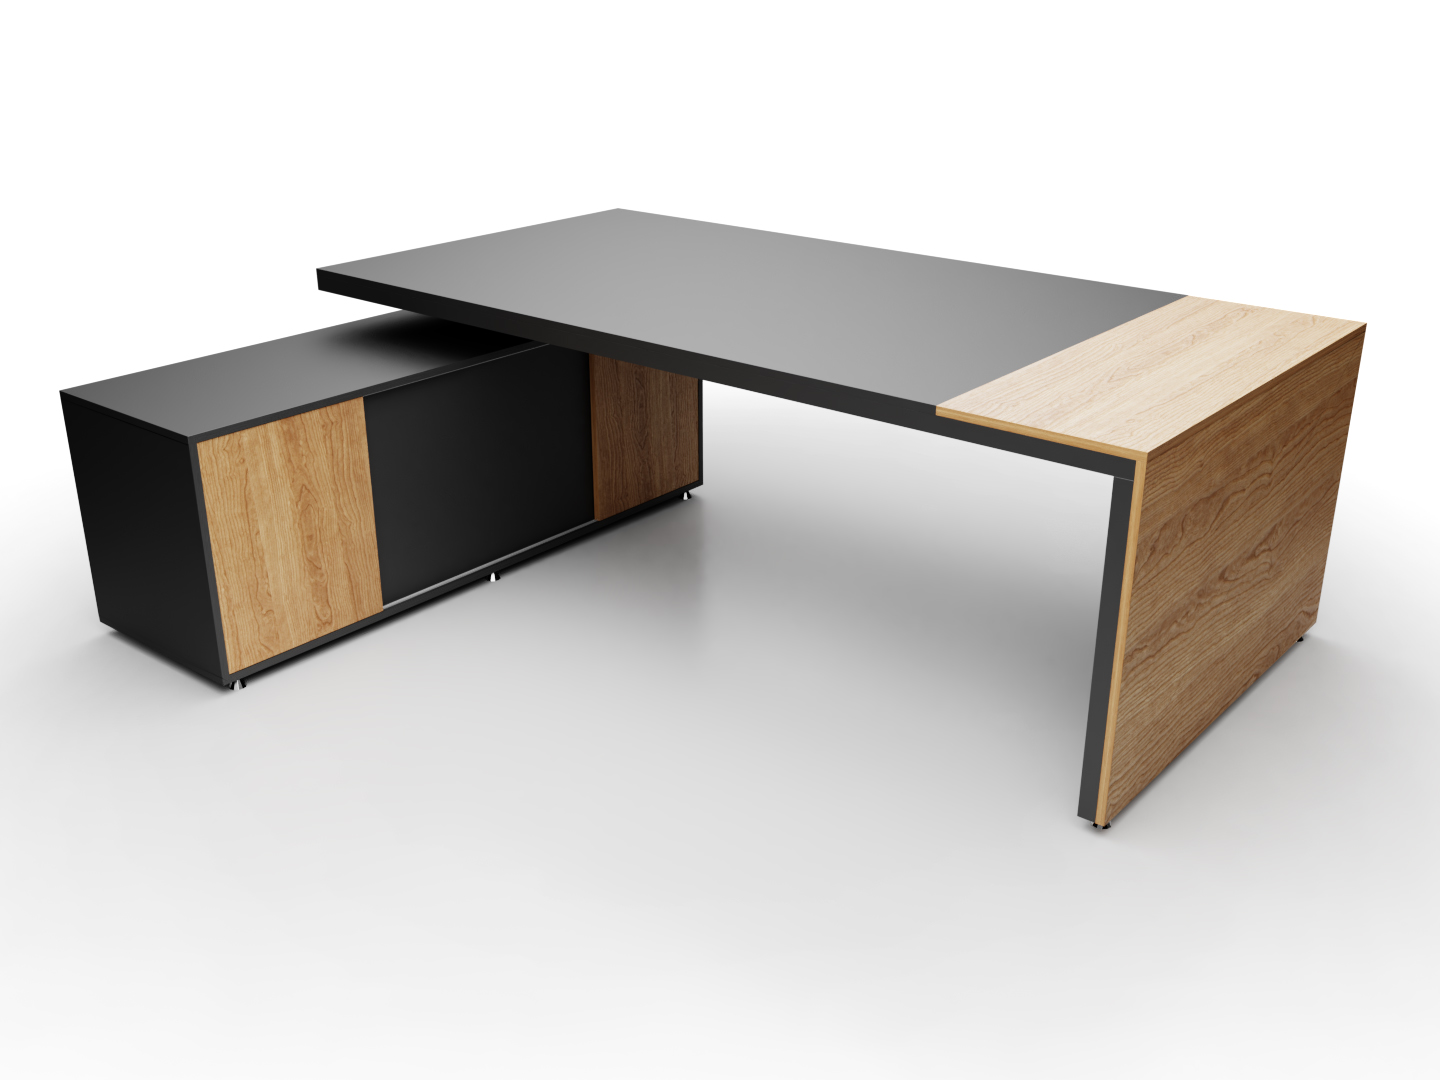 cust exec desk_back view_coninx